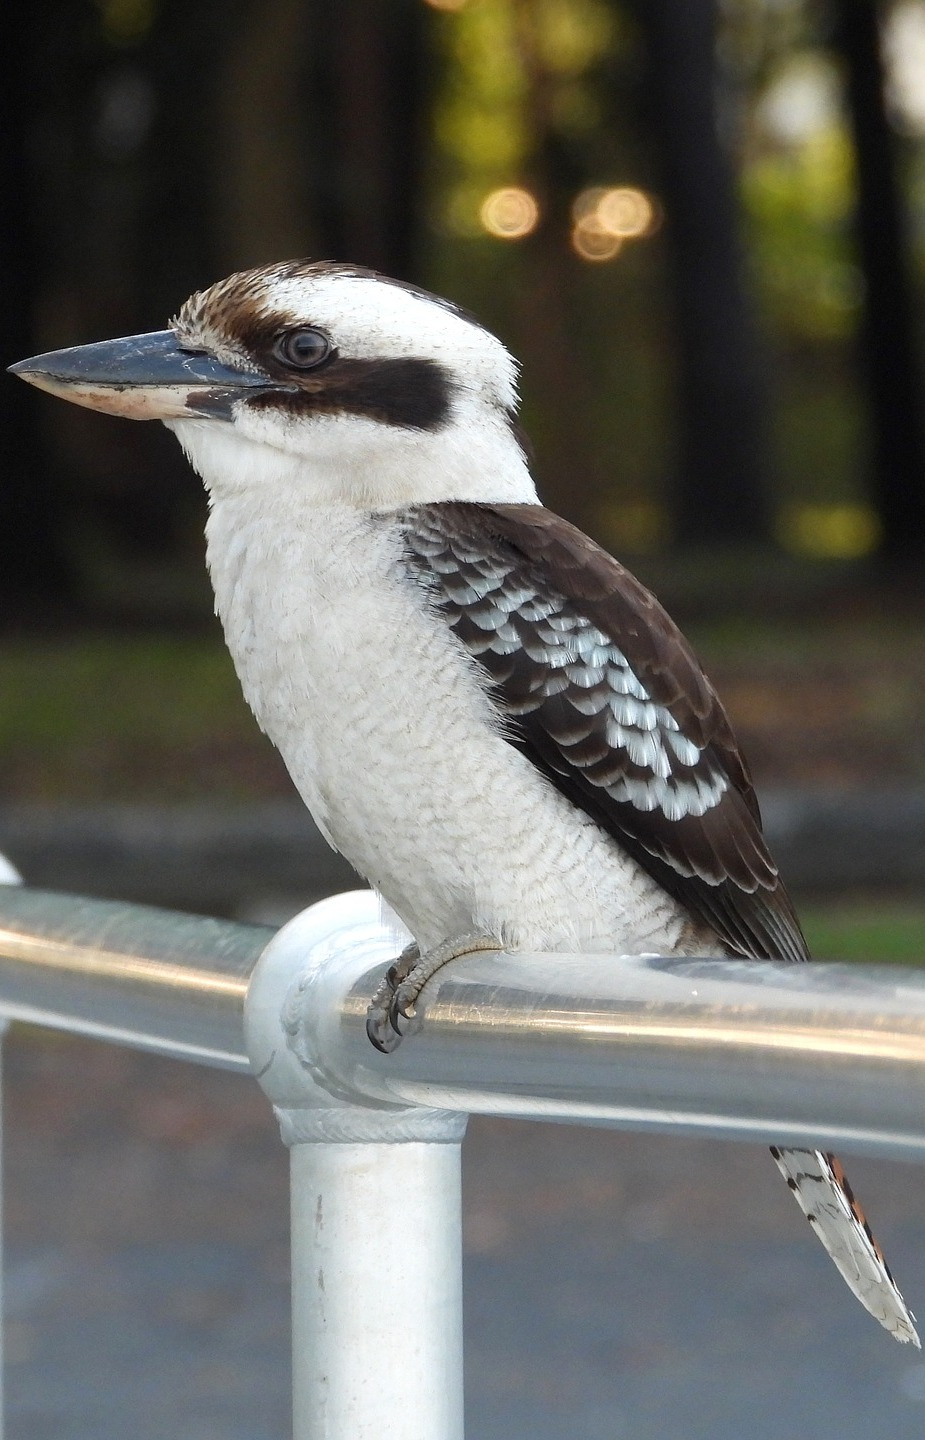 Picture of a kookaburra.